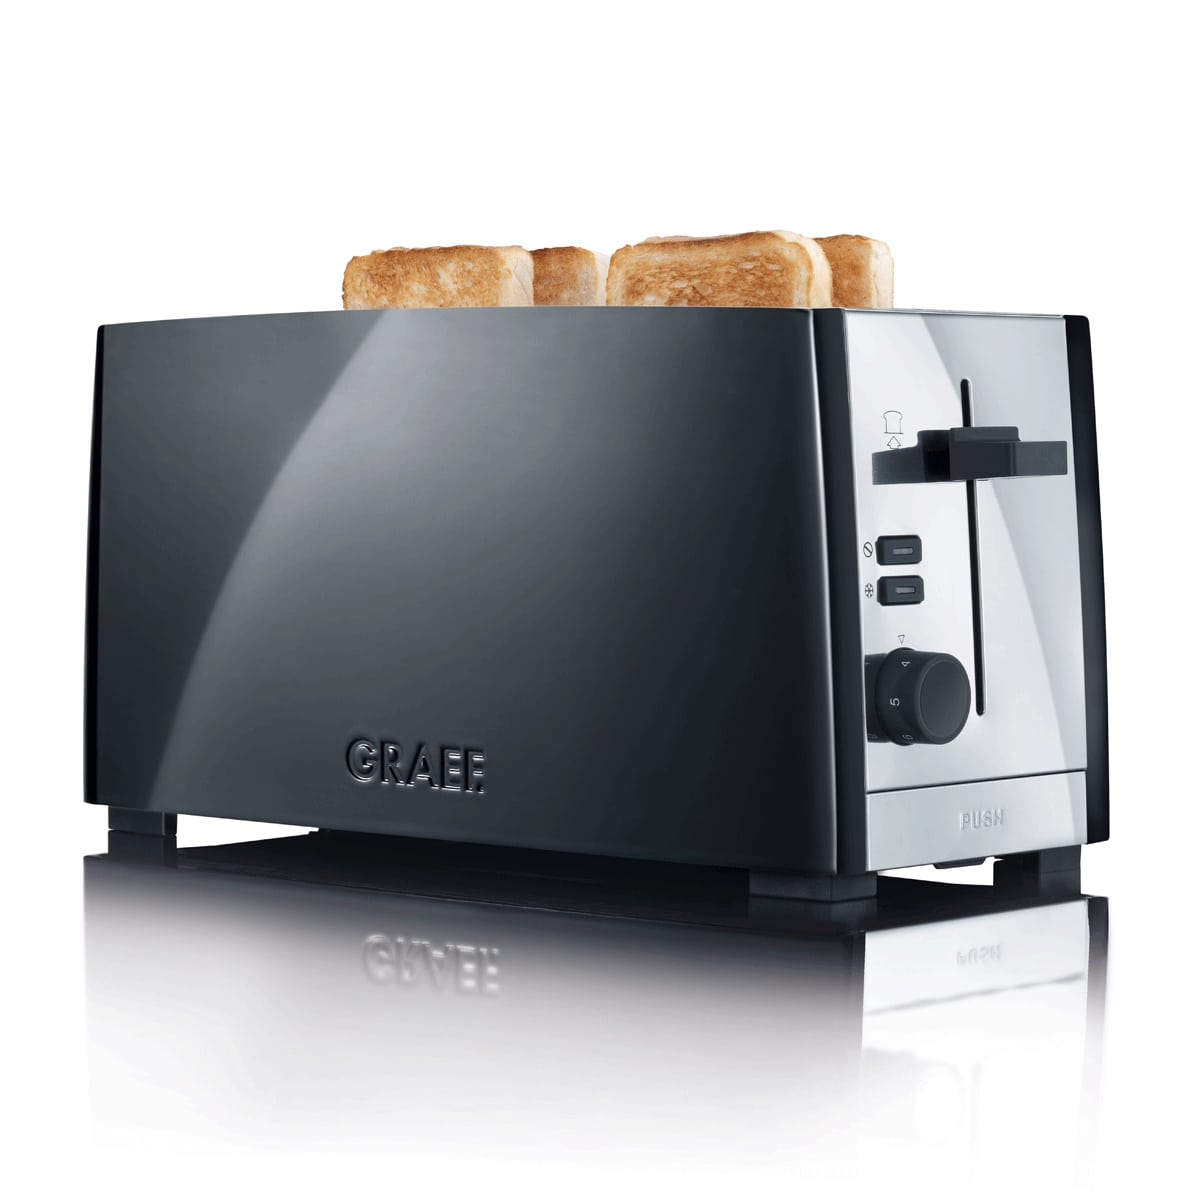 edelstahl toaster im shop bei expert technomarkt. Black Bedroom Furniture Sets. Home Design Ideas